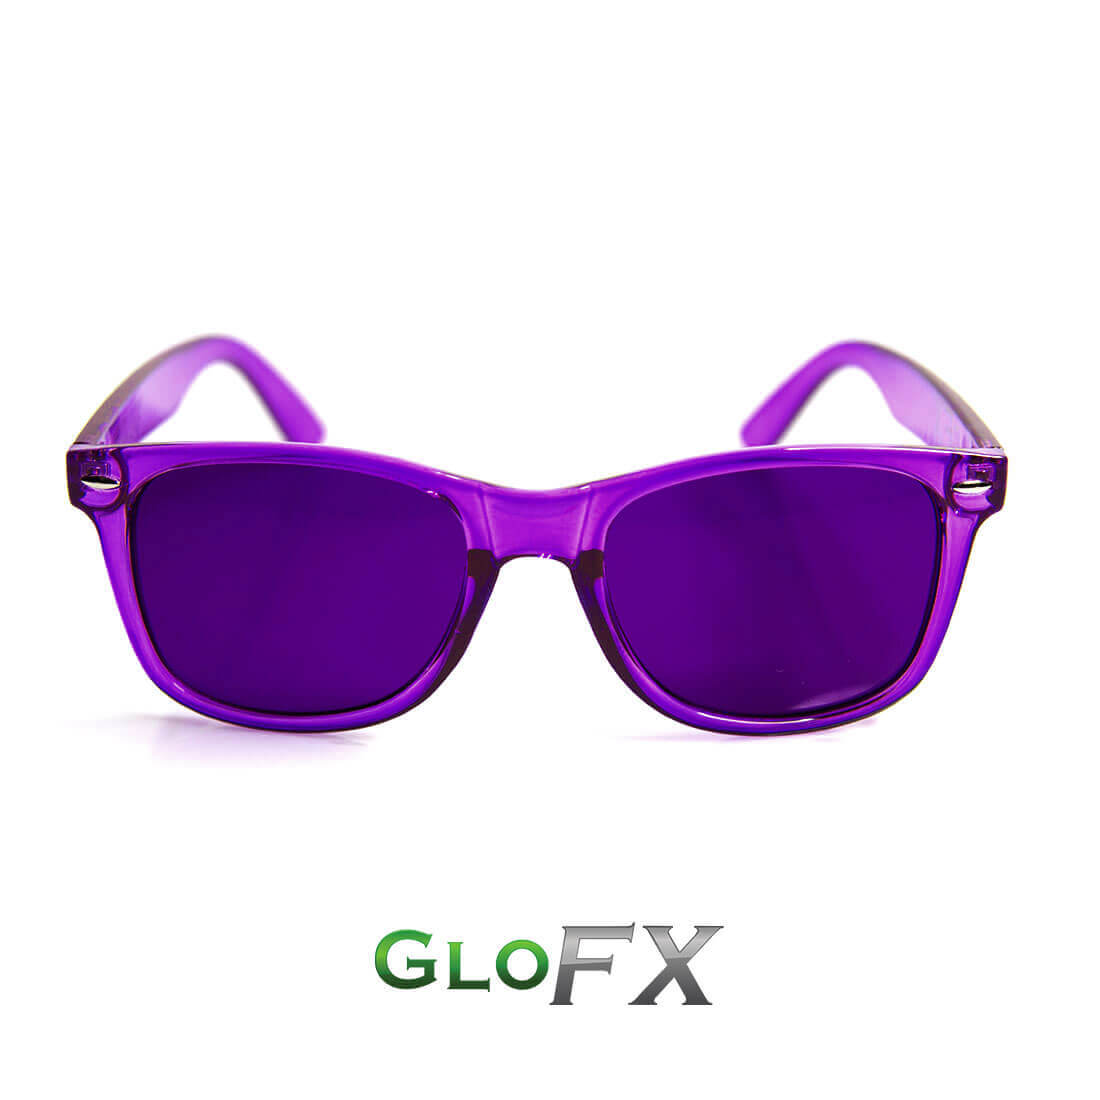 GloFX-Color-Therapy-Tinted-Glasses-Violet-3